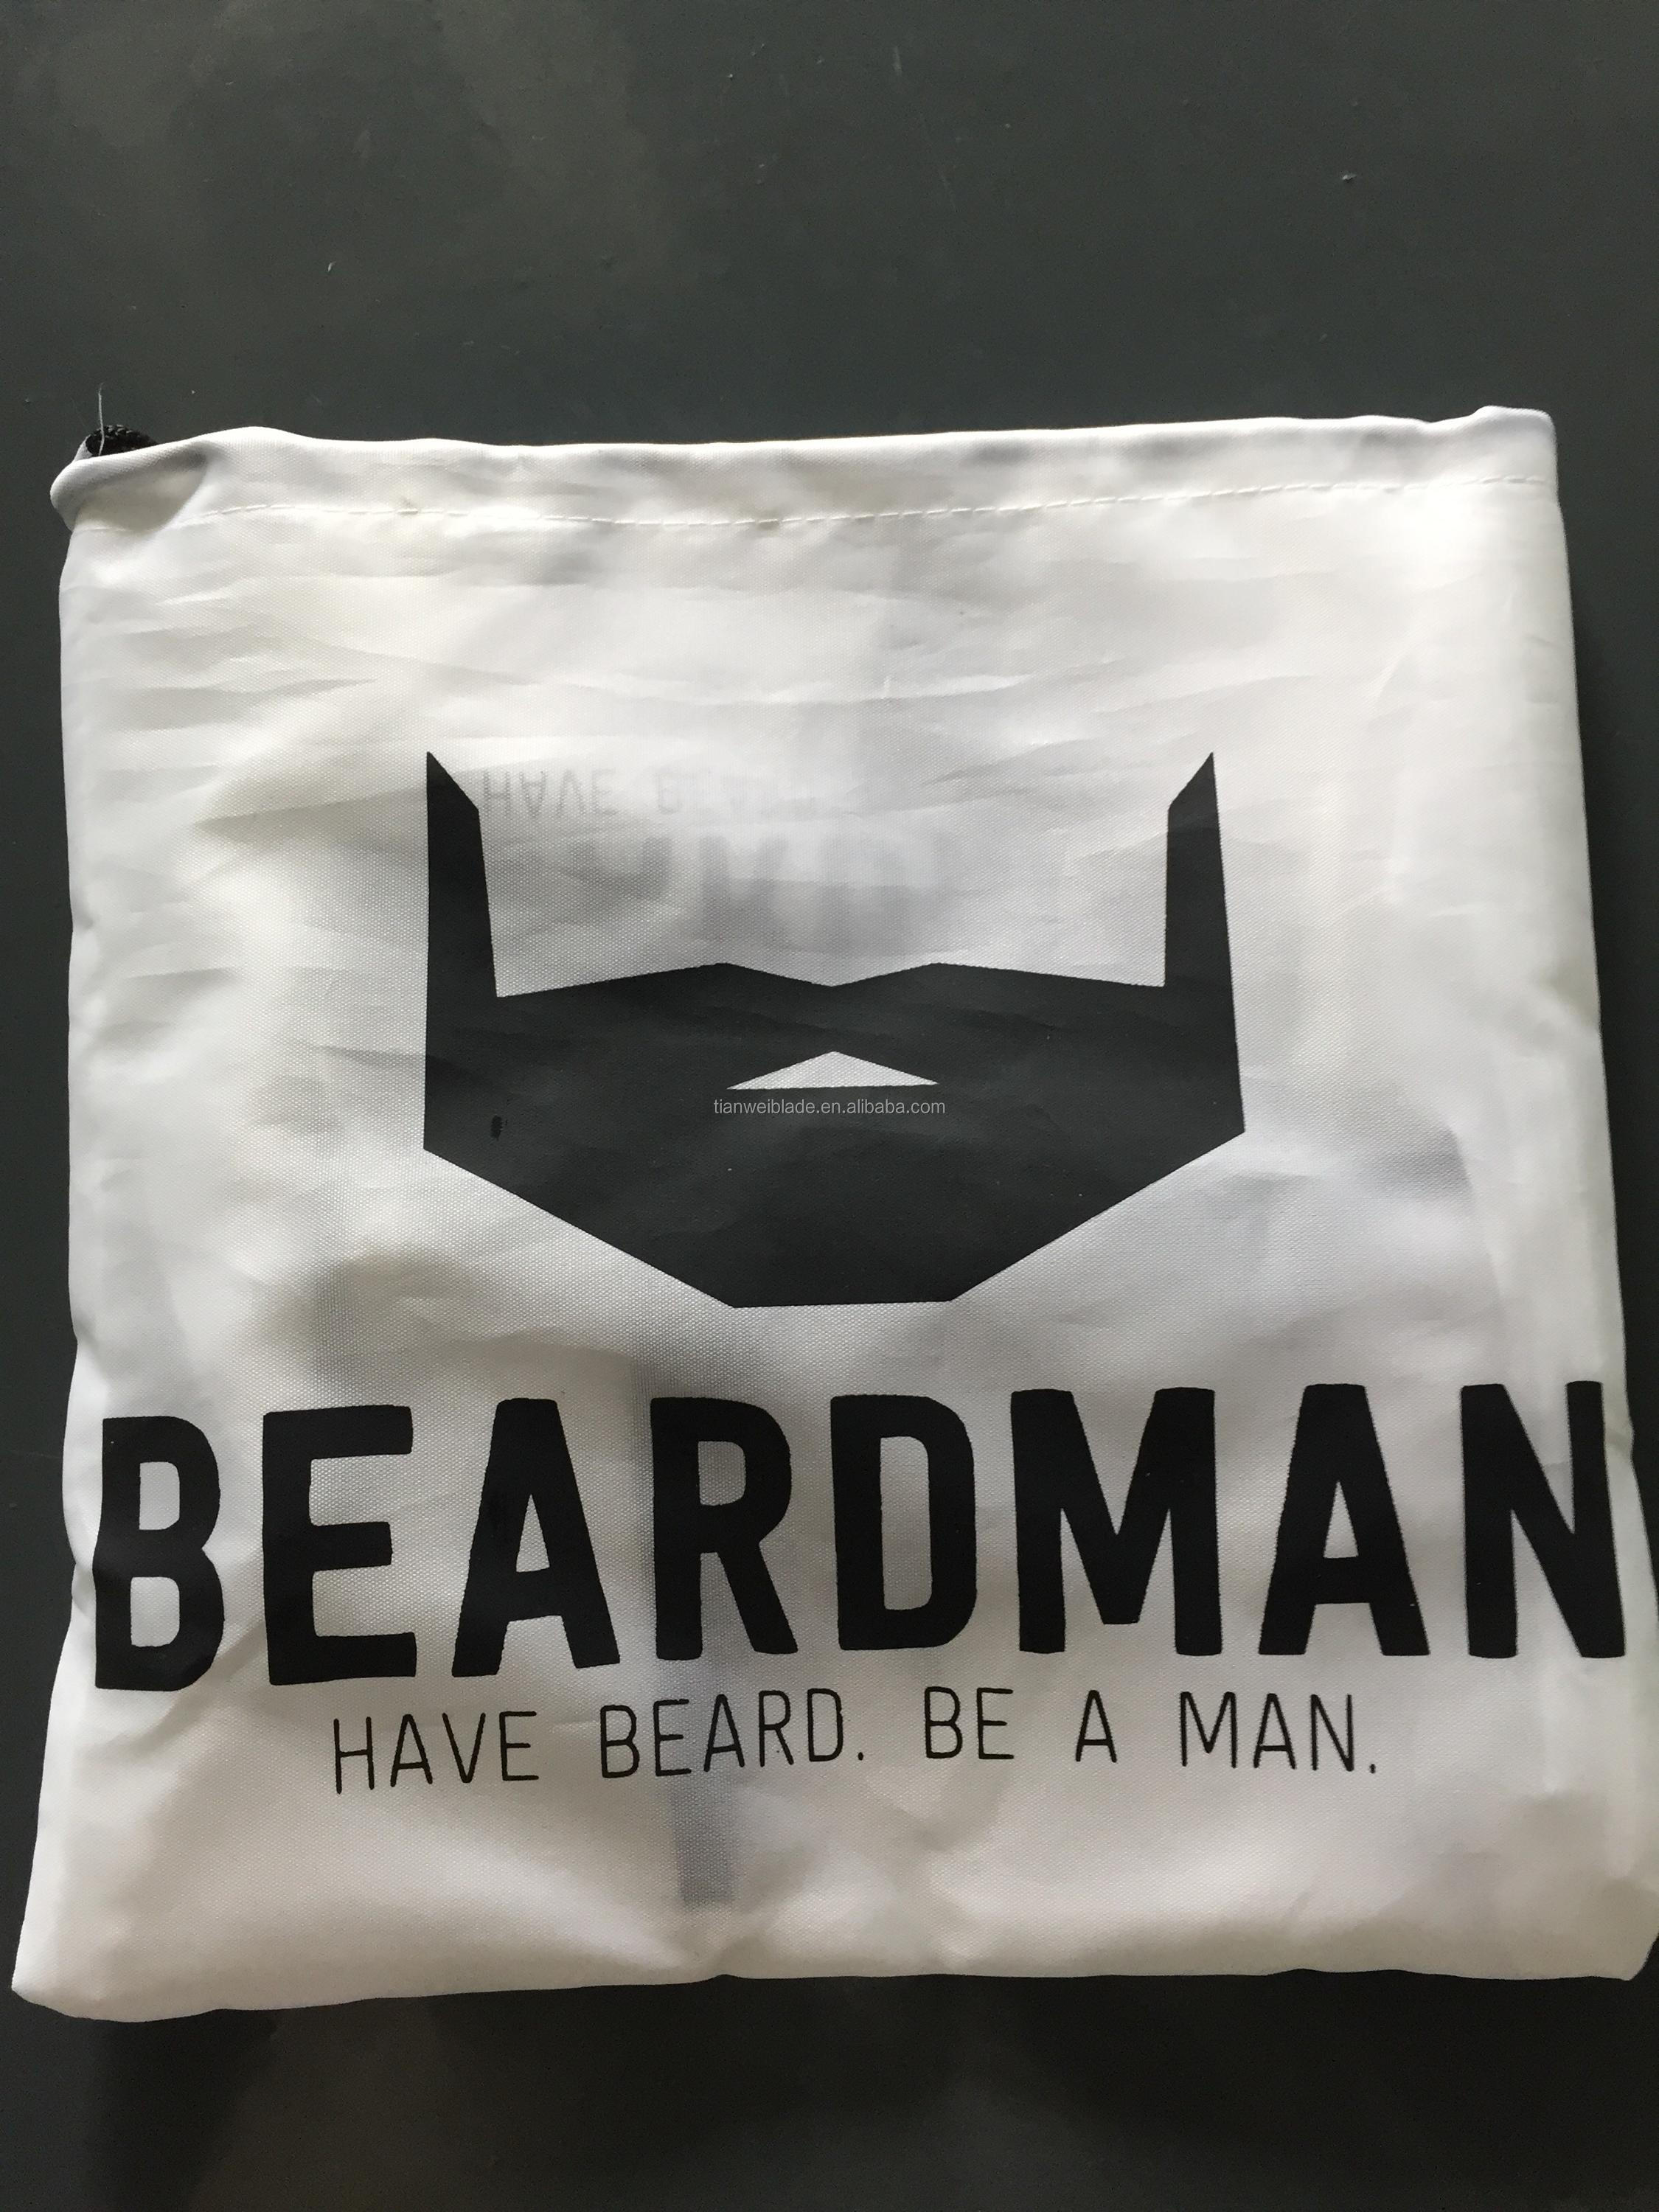 Beard Shaving Apron, Beard Trimming Hair Catcher for Easy Clean. Professional Premium Salon Quality Material